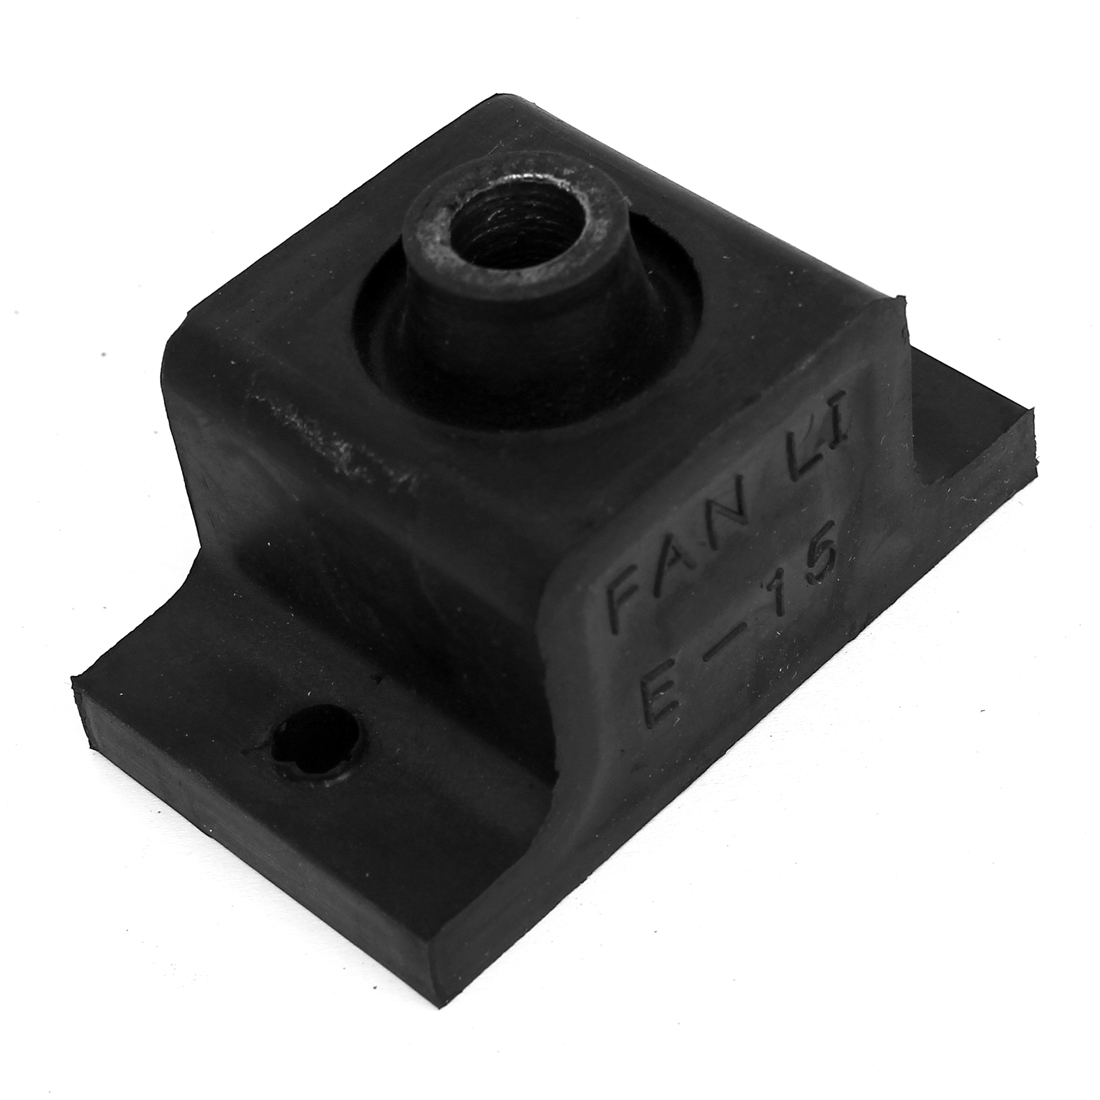 E-15 M8 Female Thread 70mm x 40mm x 40mm Black Rubber Vibration Isolator Mounts